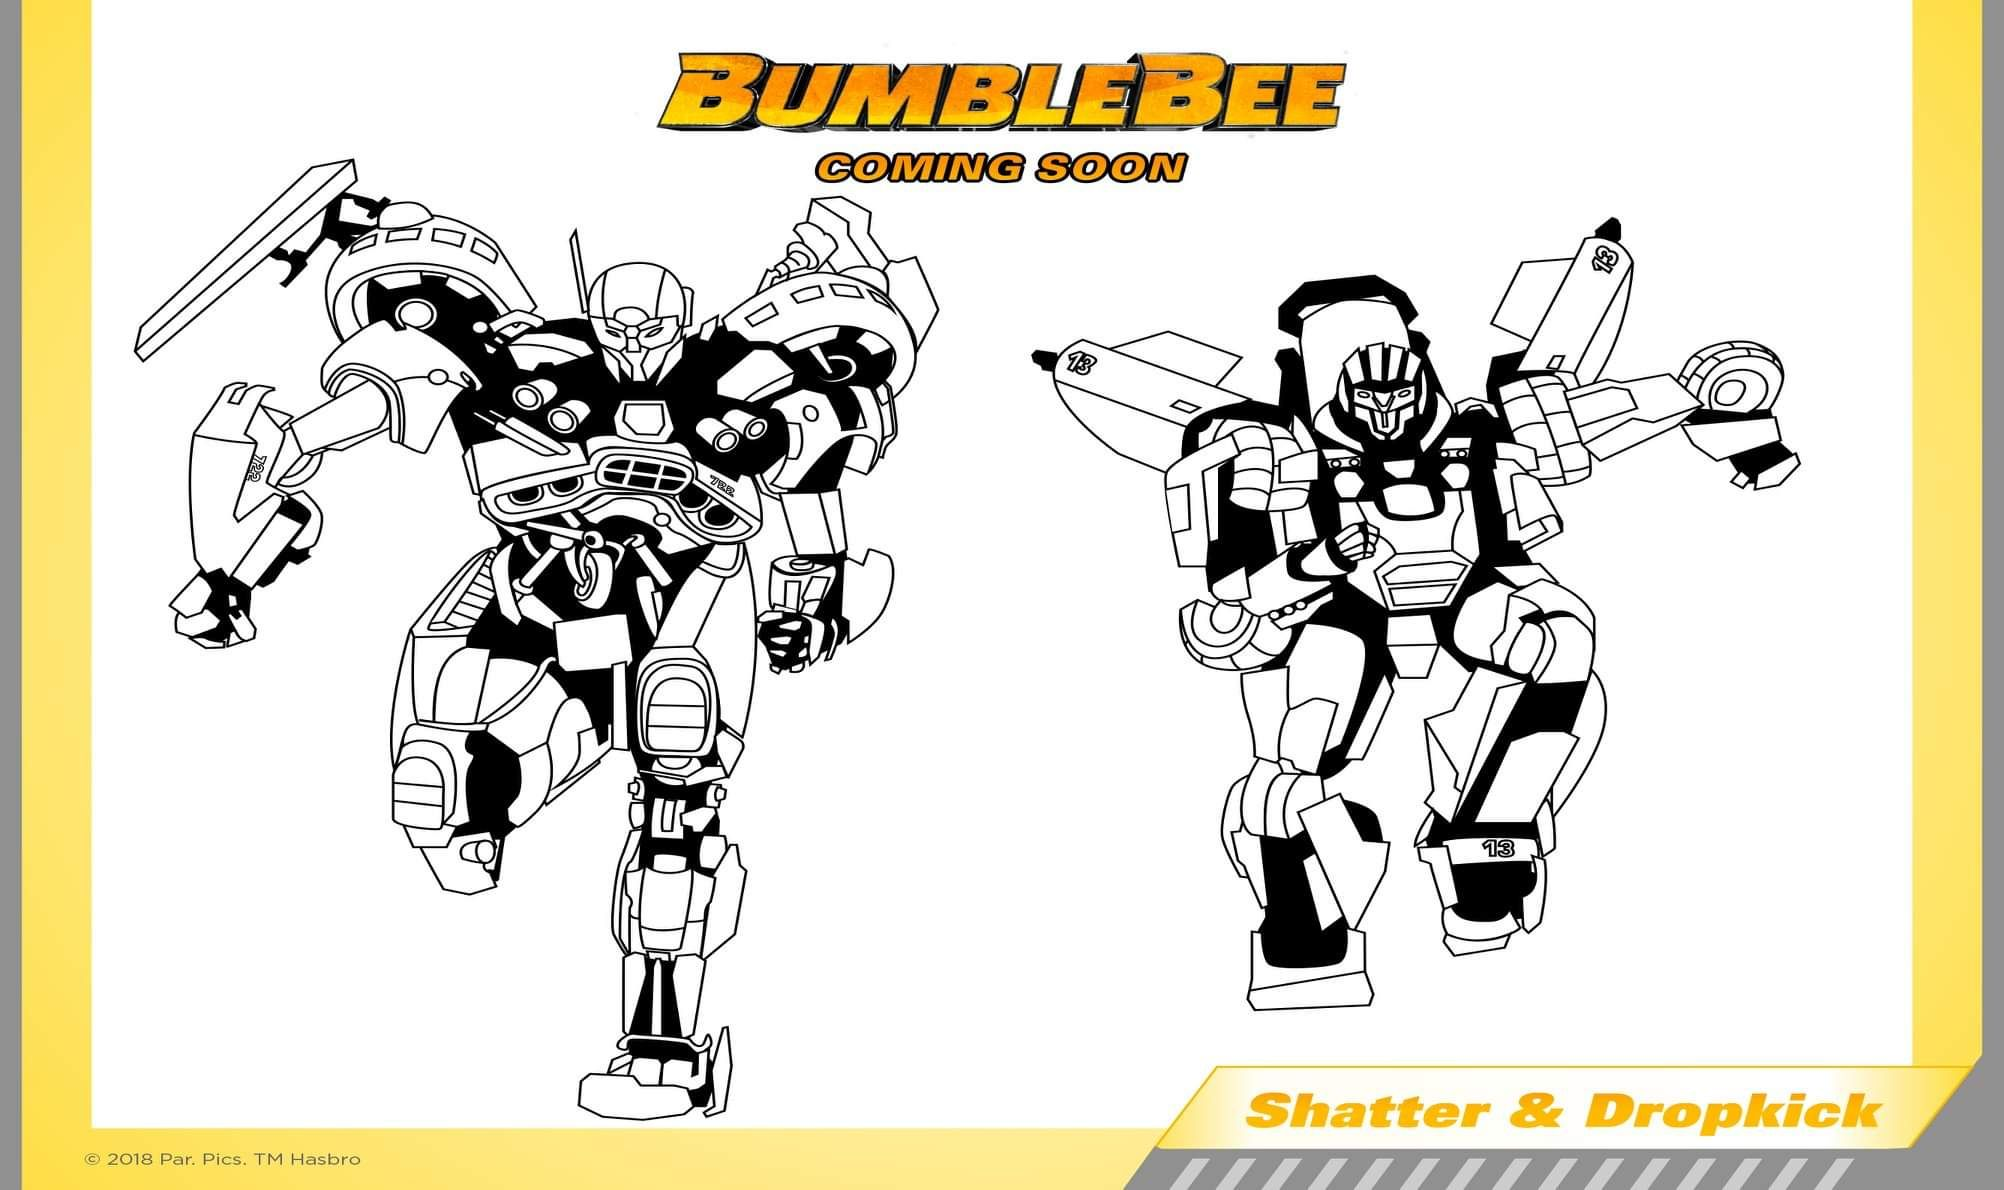 Transformers Bumblebee Merchandise Bonanza Jointhebuzz Transformers Coloring Pages Penguin Coloring Pages Lego Coloring Pages